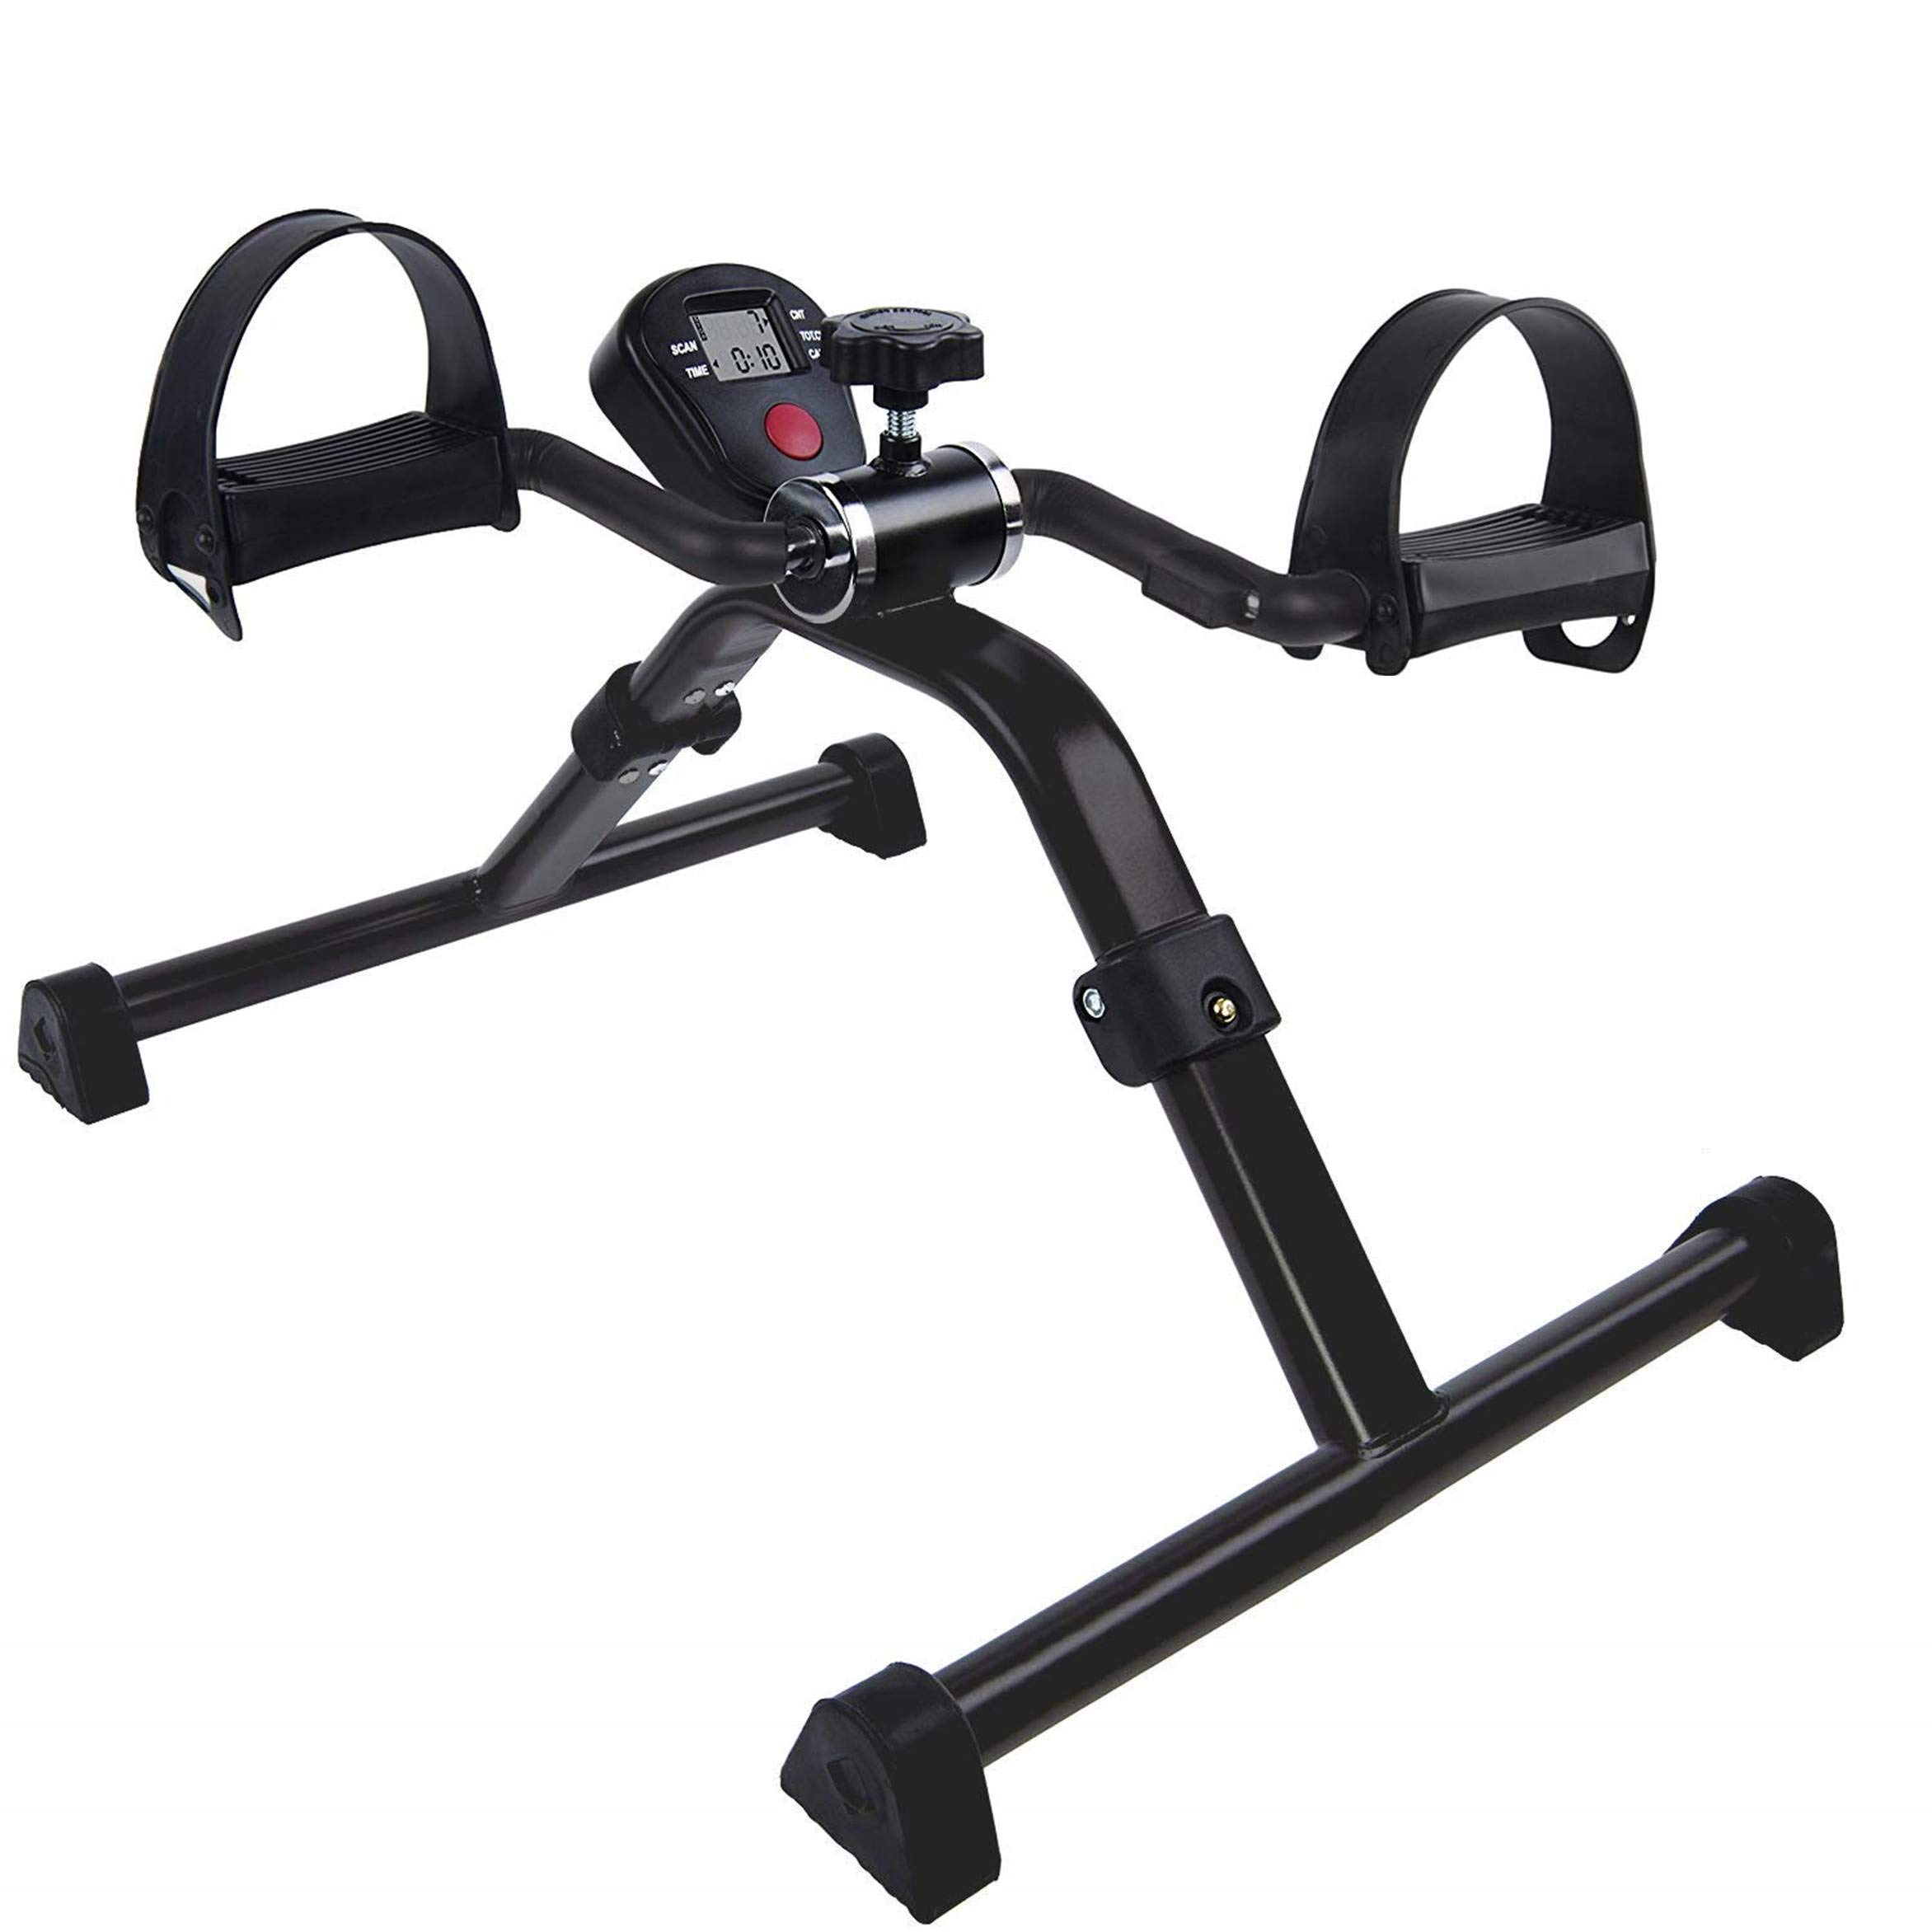 Vaunn Medical Folding Pedal Exerciser with Electronic Display for Legs and Arms Workout (Fully Assembled Exercise Peddler, no Tools Required) by Vaunn